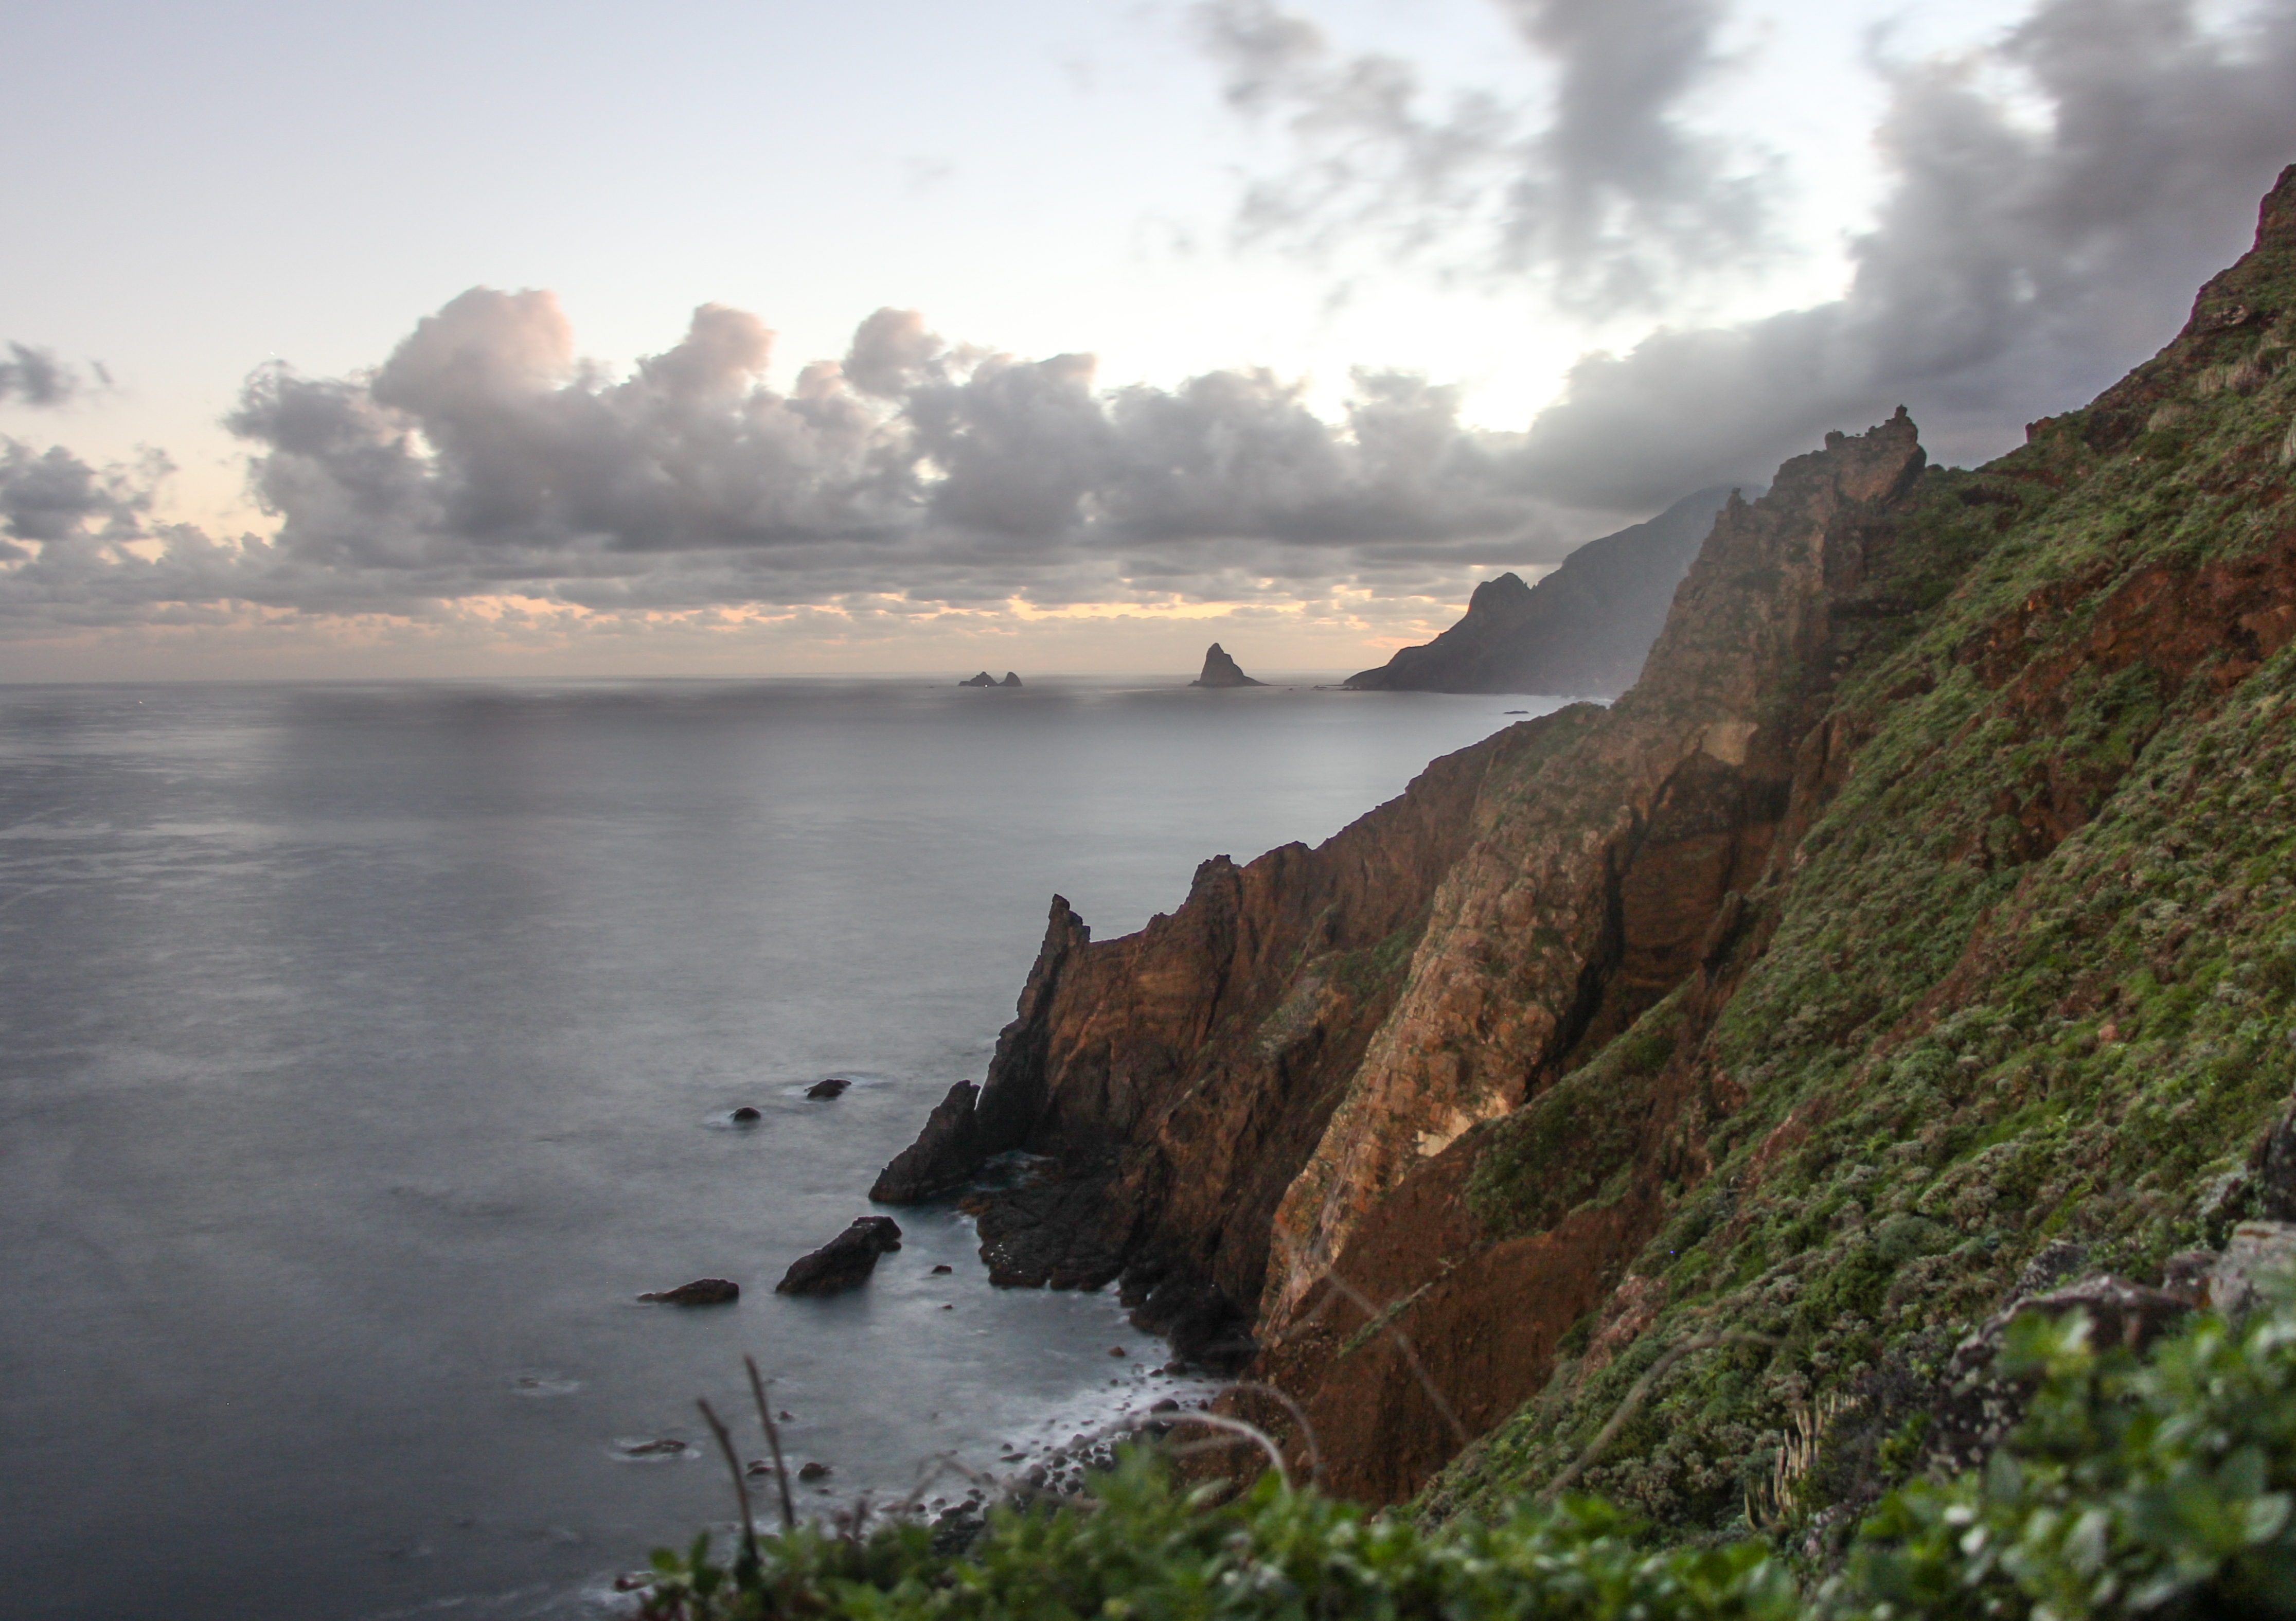 North_coast_of_Tenerife,_Spain_21